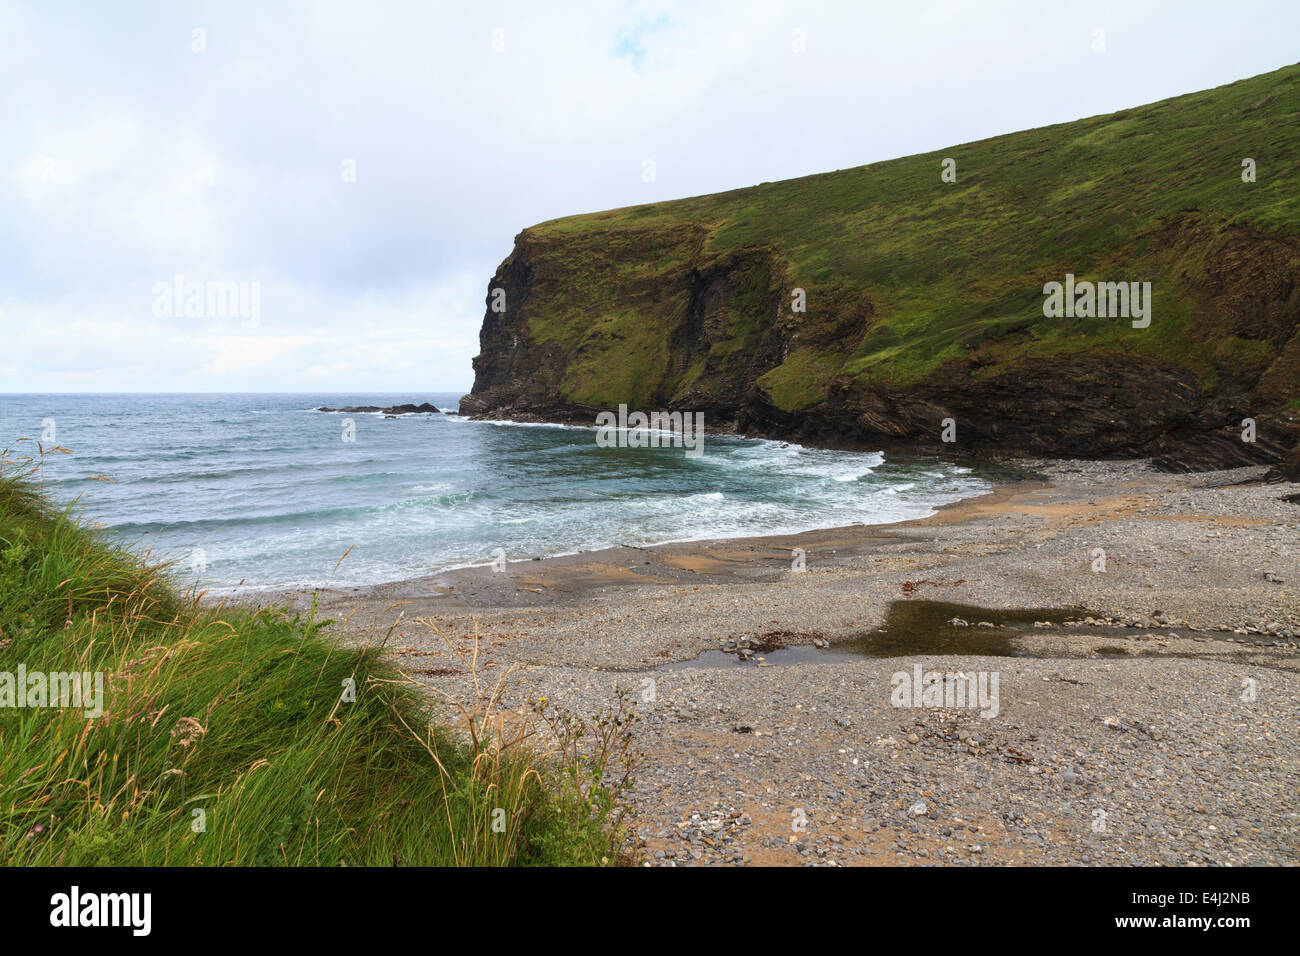 The beach at Crackington Haven, Cornwall, UK in June - Stock Image